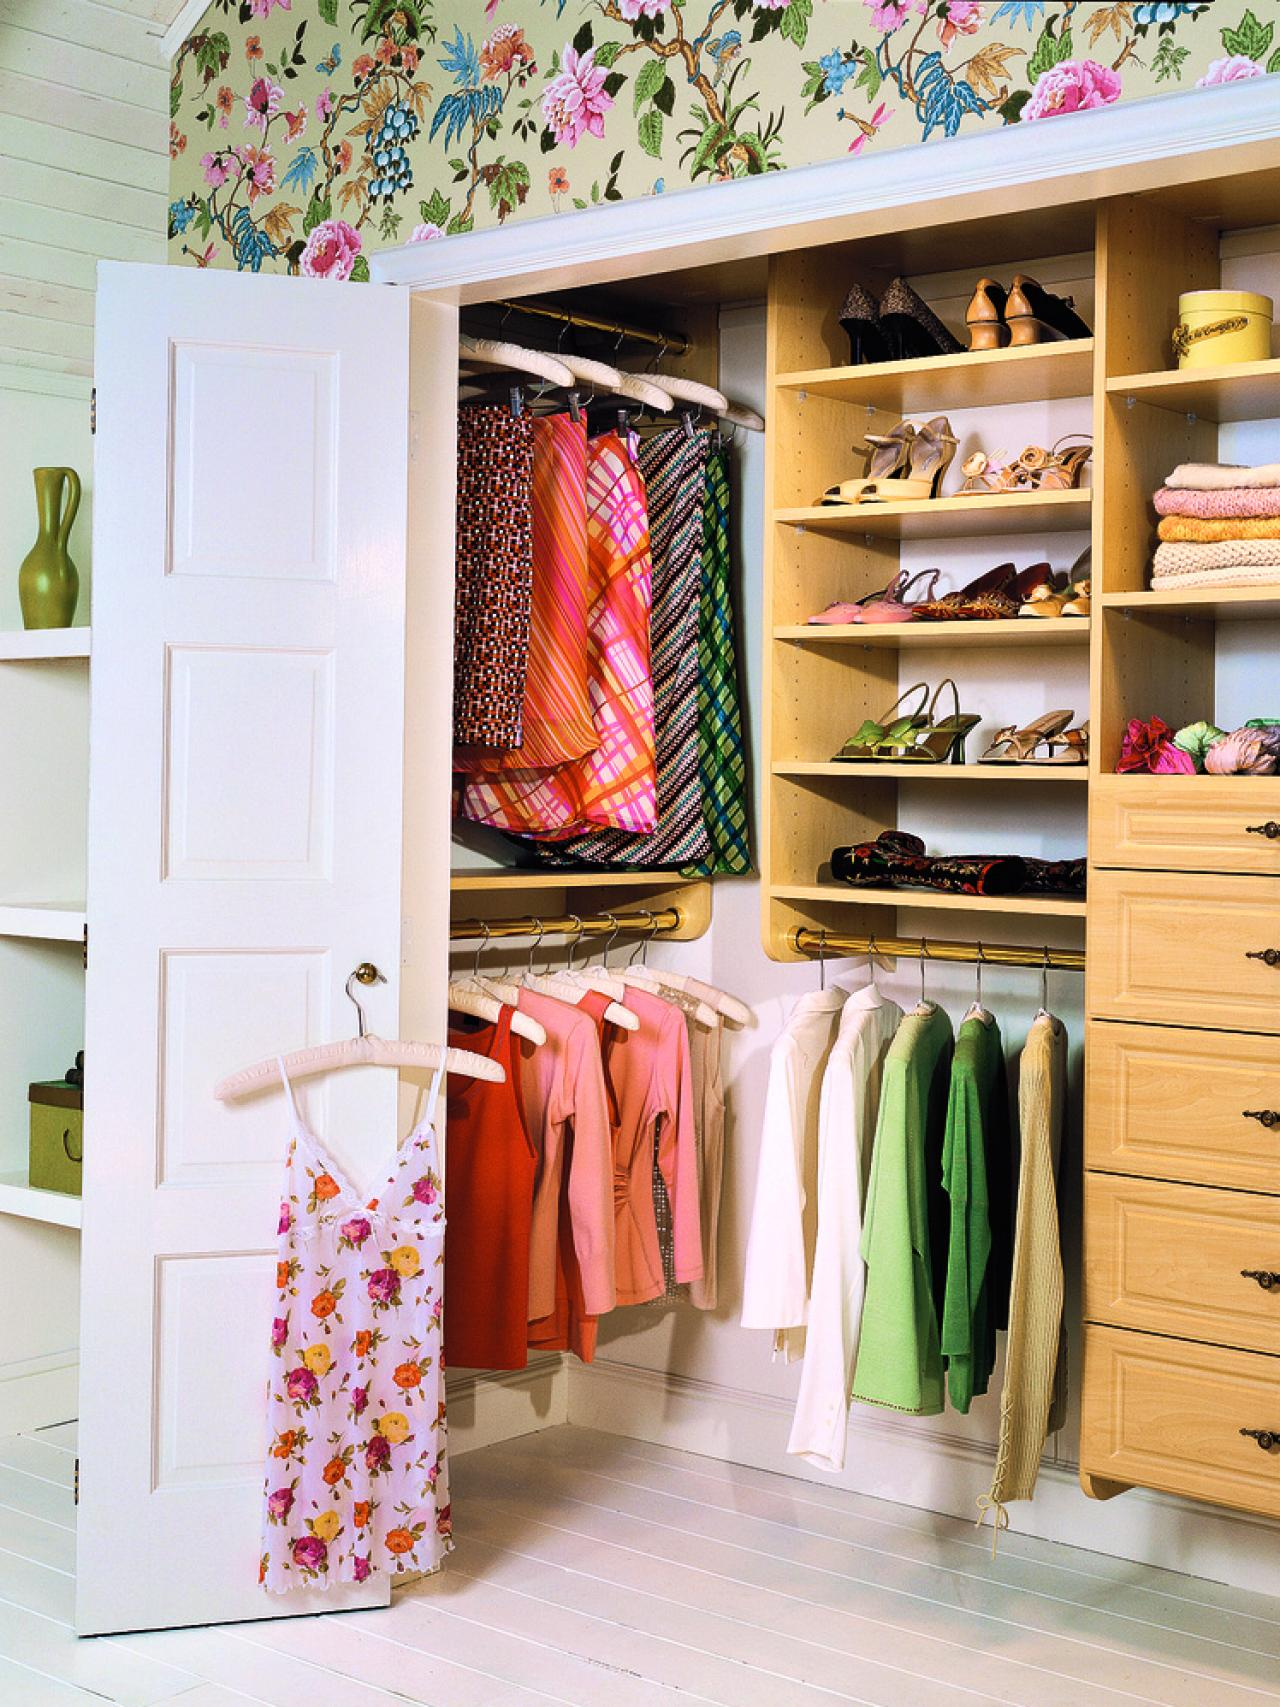 Le Meilleur Small Closet Organization Ideas Pictures Options Tips Ce Mois Ci